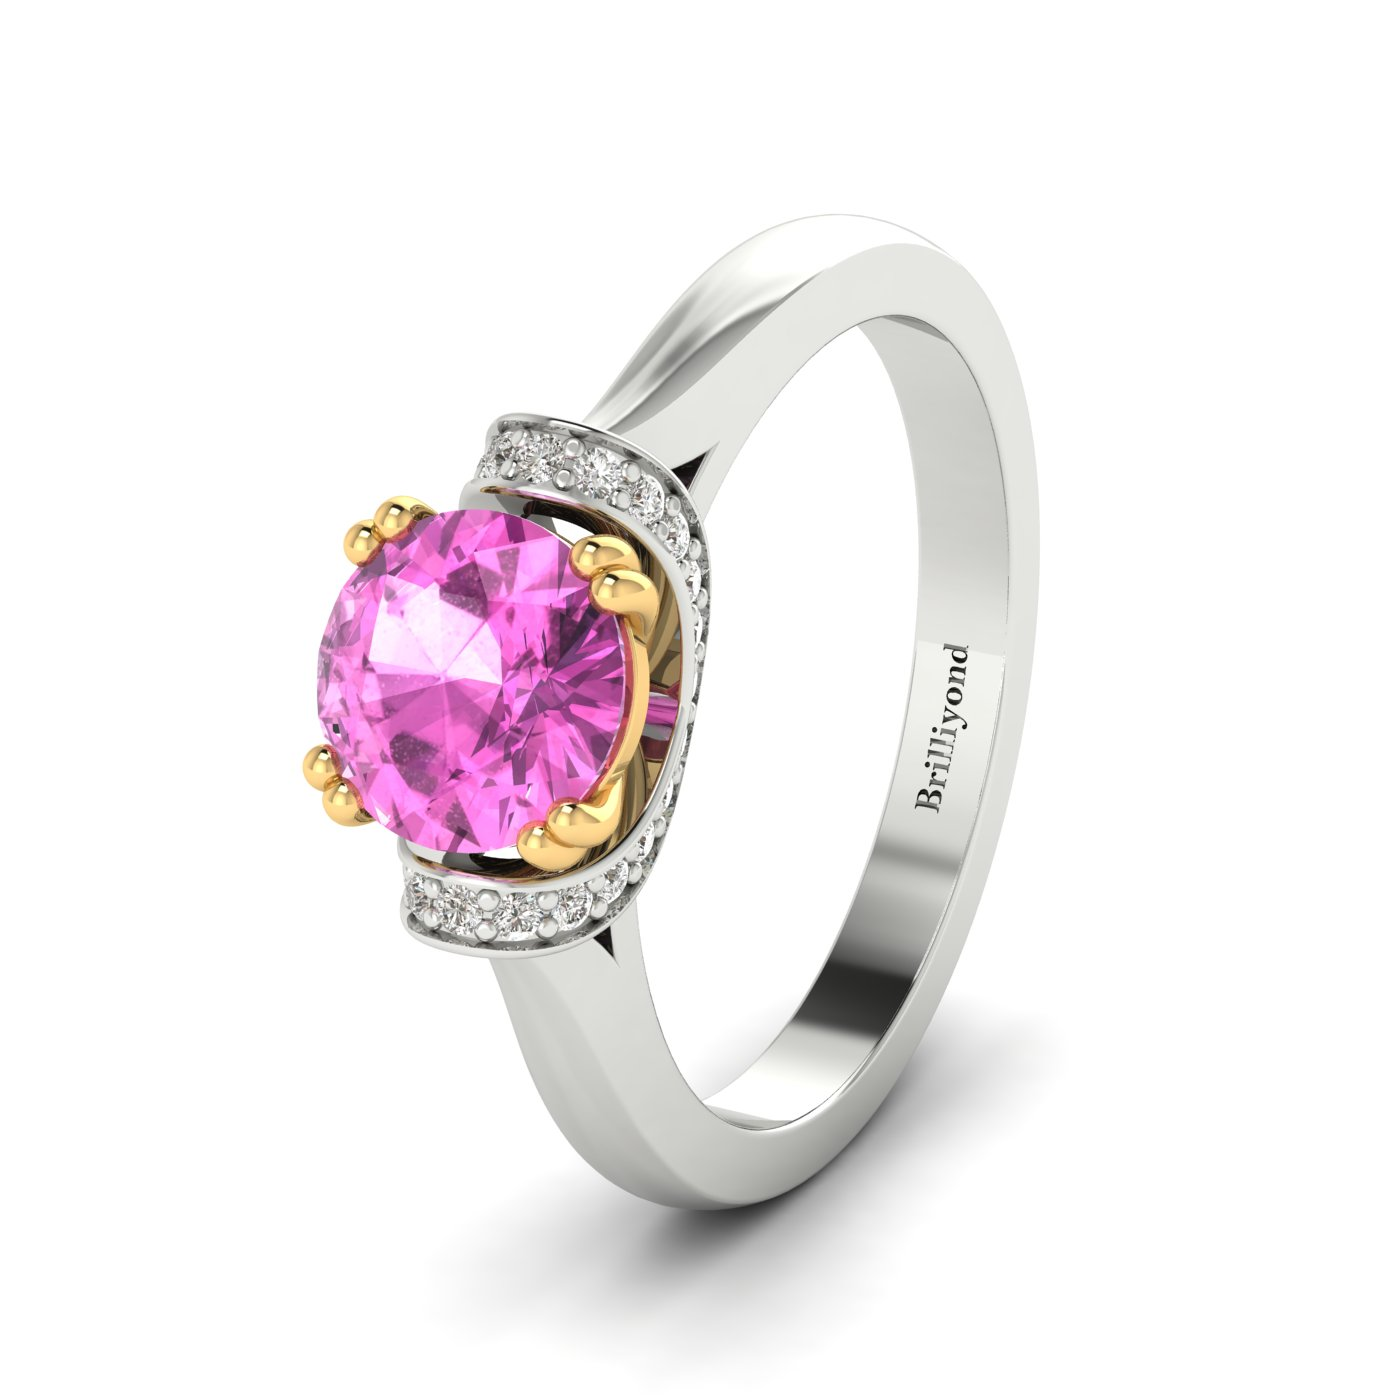 GIA Certified Diamonds Surround the Natural Pink Sapphire Centre Stone